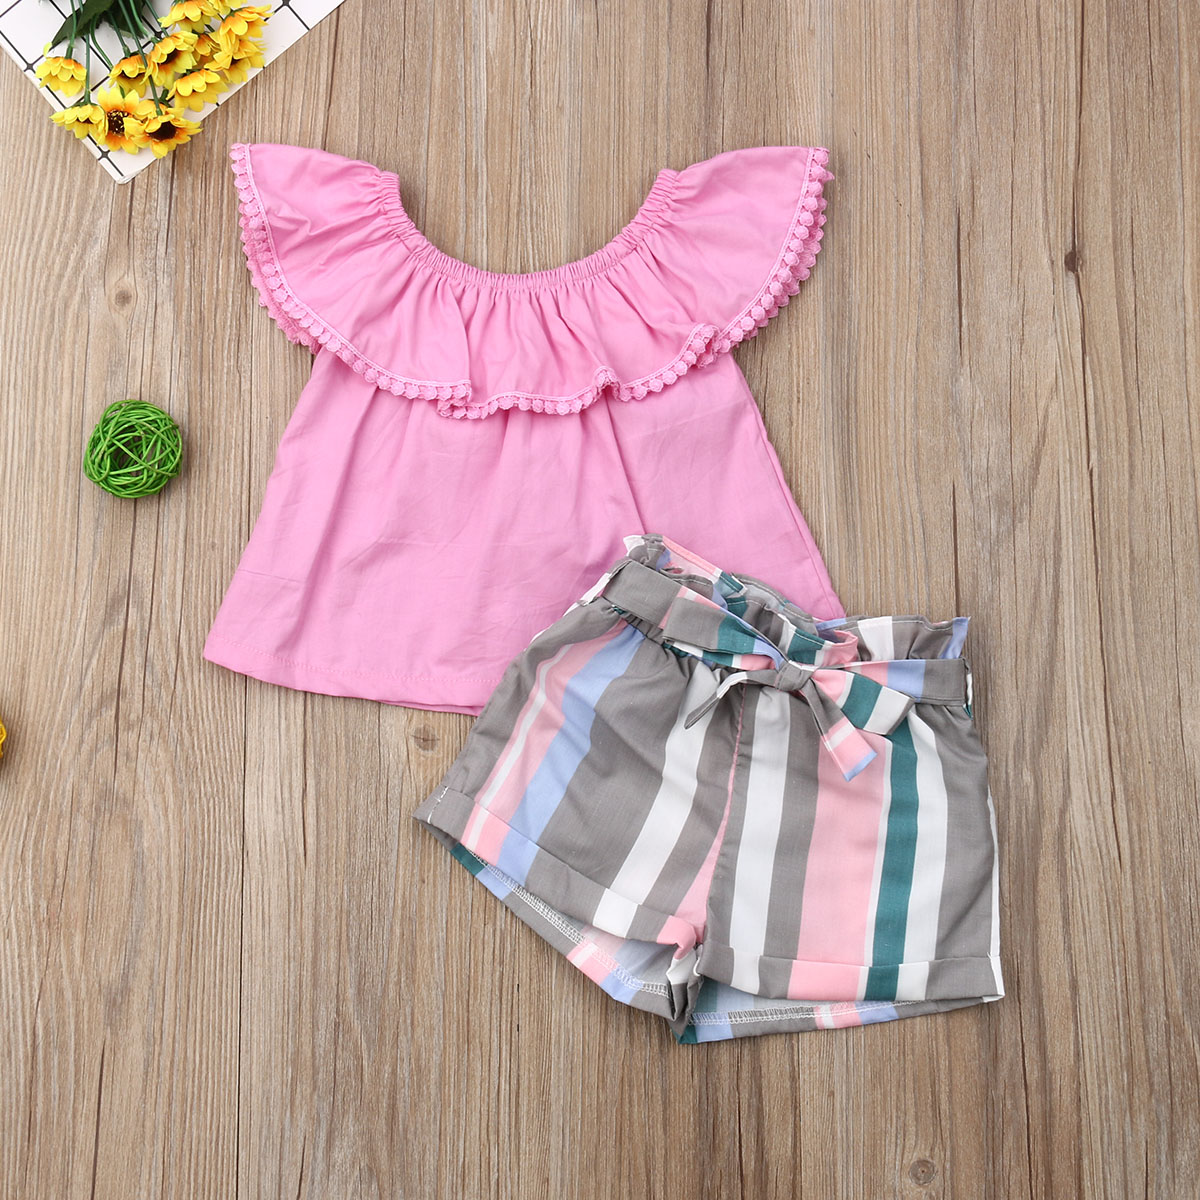 Pudcoco Summer Toddler Baby Girl Clothes Off Shoulder Ruffle Solid Color Tops Striped Short Pants 2Pcs Outfits Casual Clothes